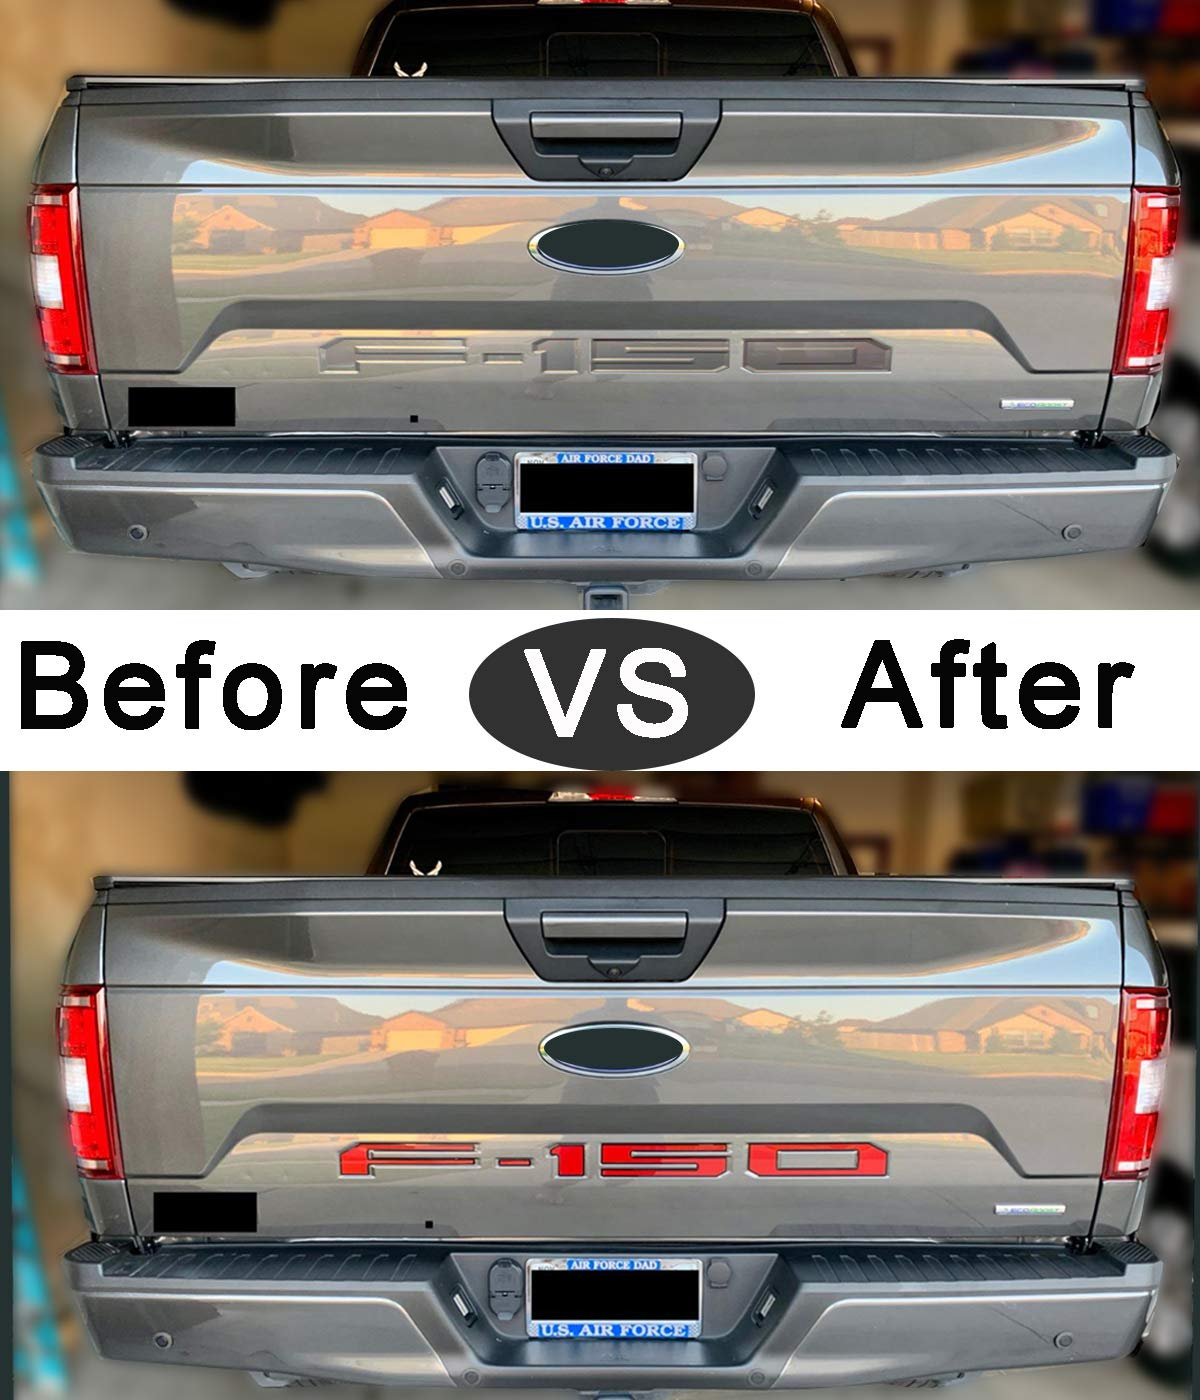 Arita Tailgate Insert Letters for Ford F150 2018 2019 2020-3M Adhesive /& 3D Raised Metal Tailgate Decal Letters Gloss Black with Red Border